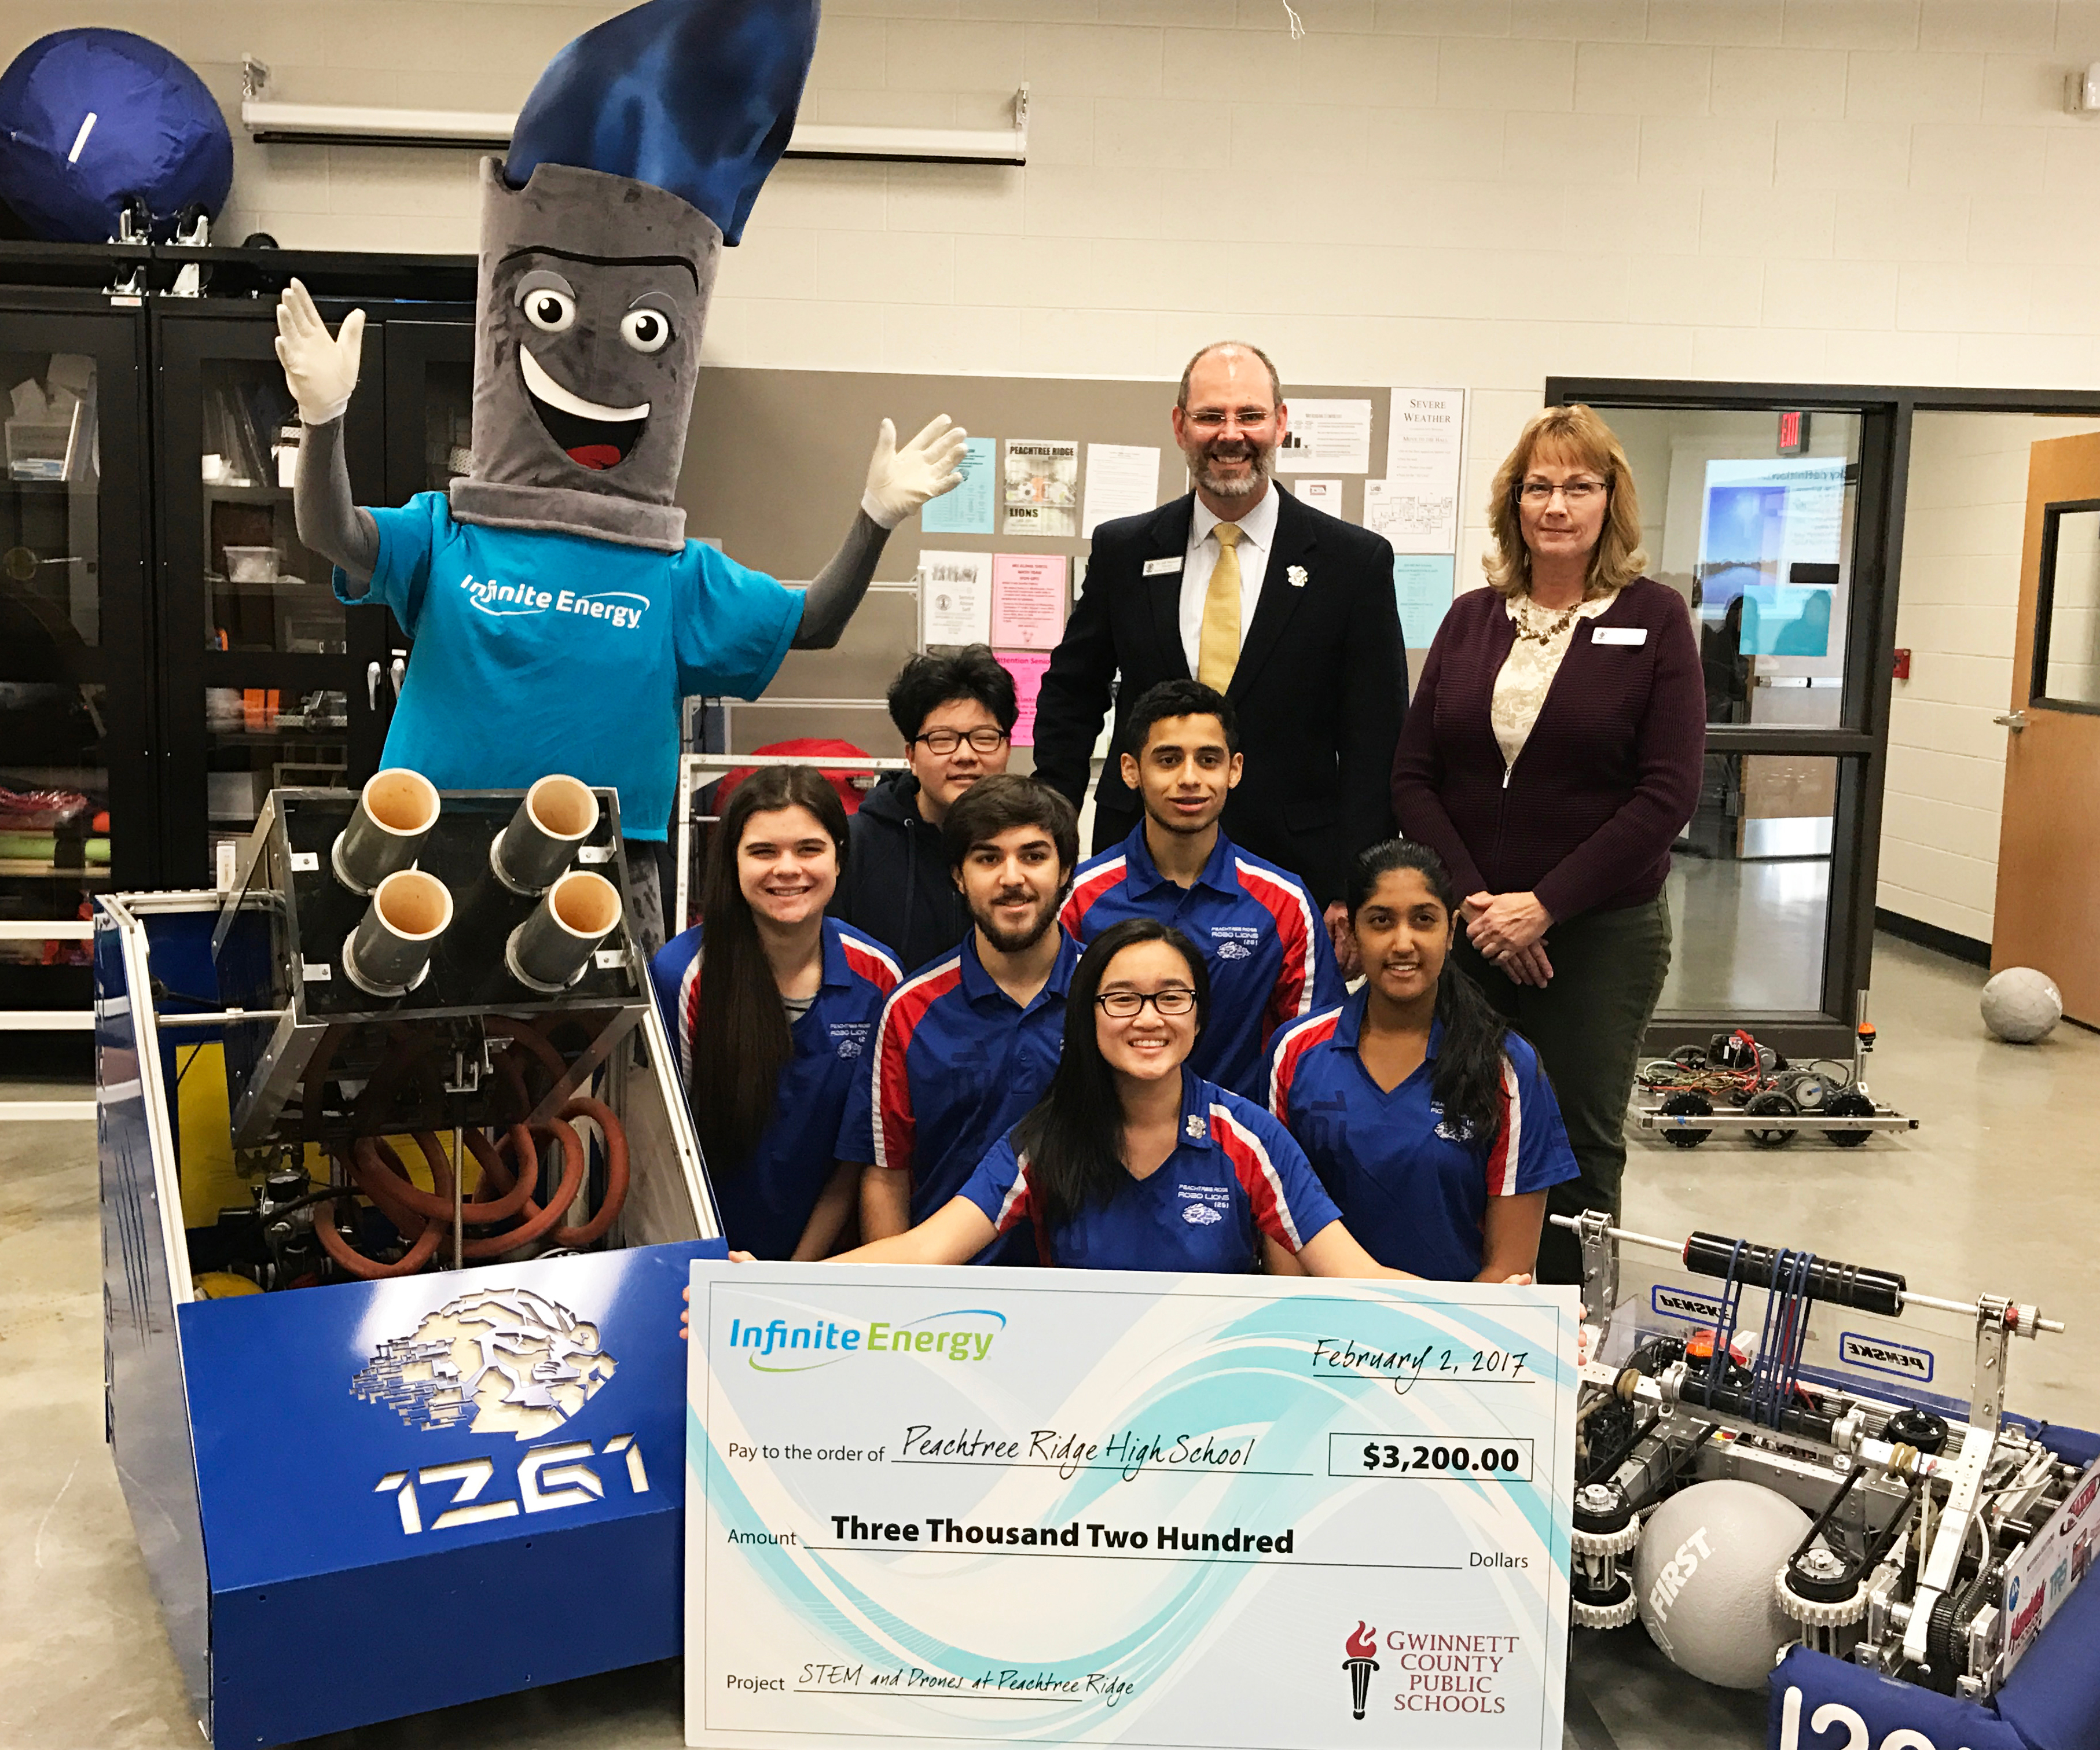 Infinite Energy Natural Gas provides STEAM grants